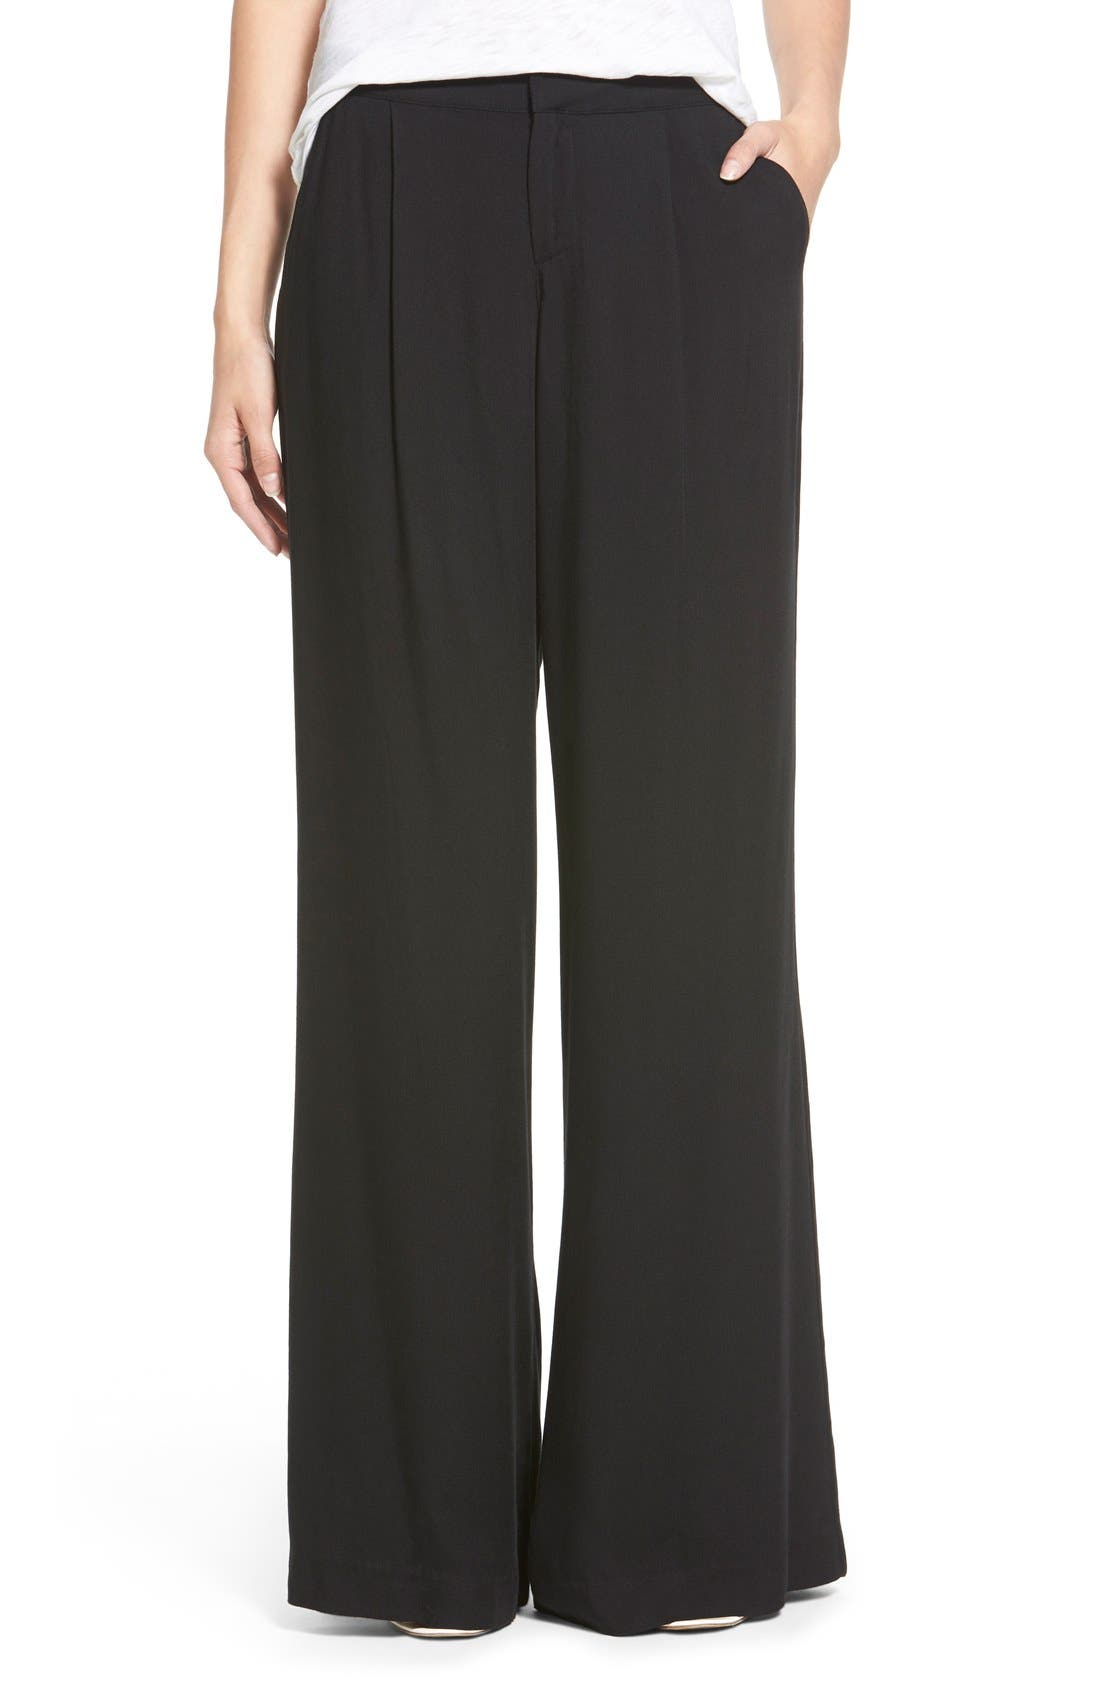 Alternate Image 1 Selected - Socialite Wide Leg Trousers